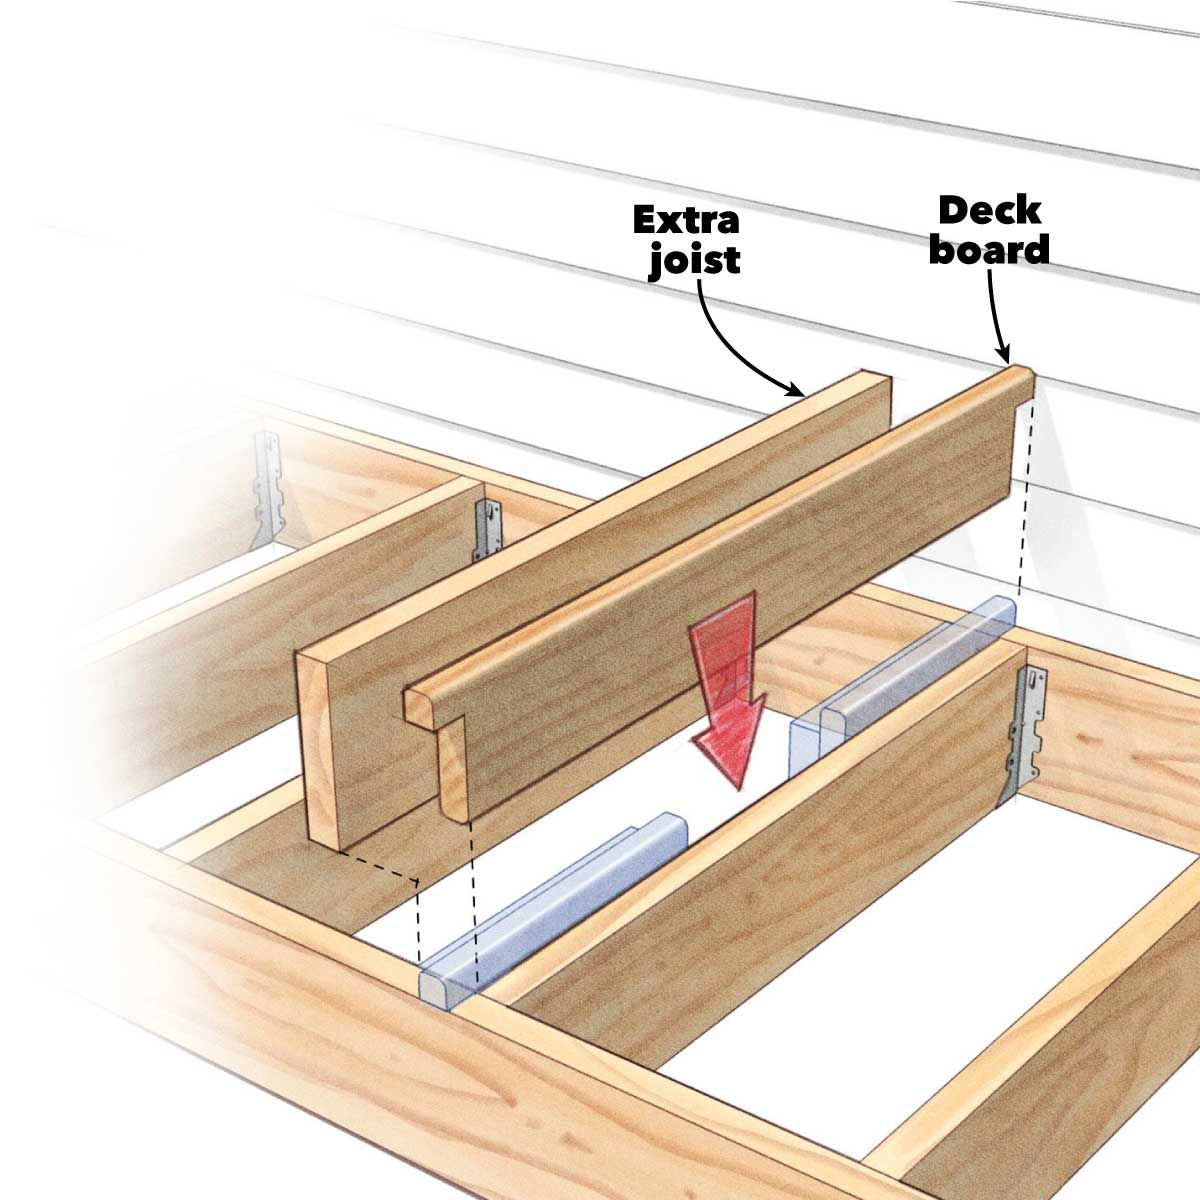 Expert Tips For How To Build A Deck Diy Deck Building A Deck Deck Building Plans